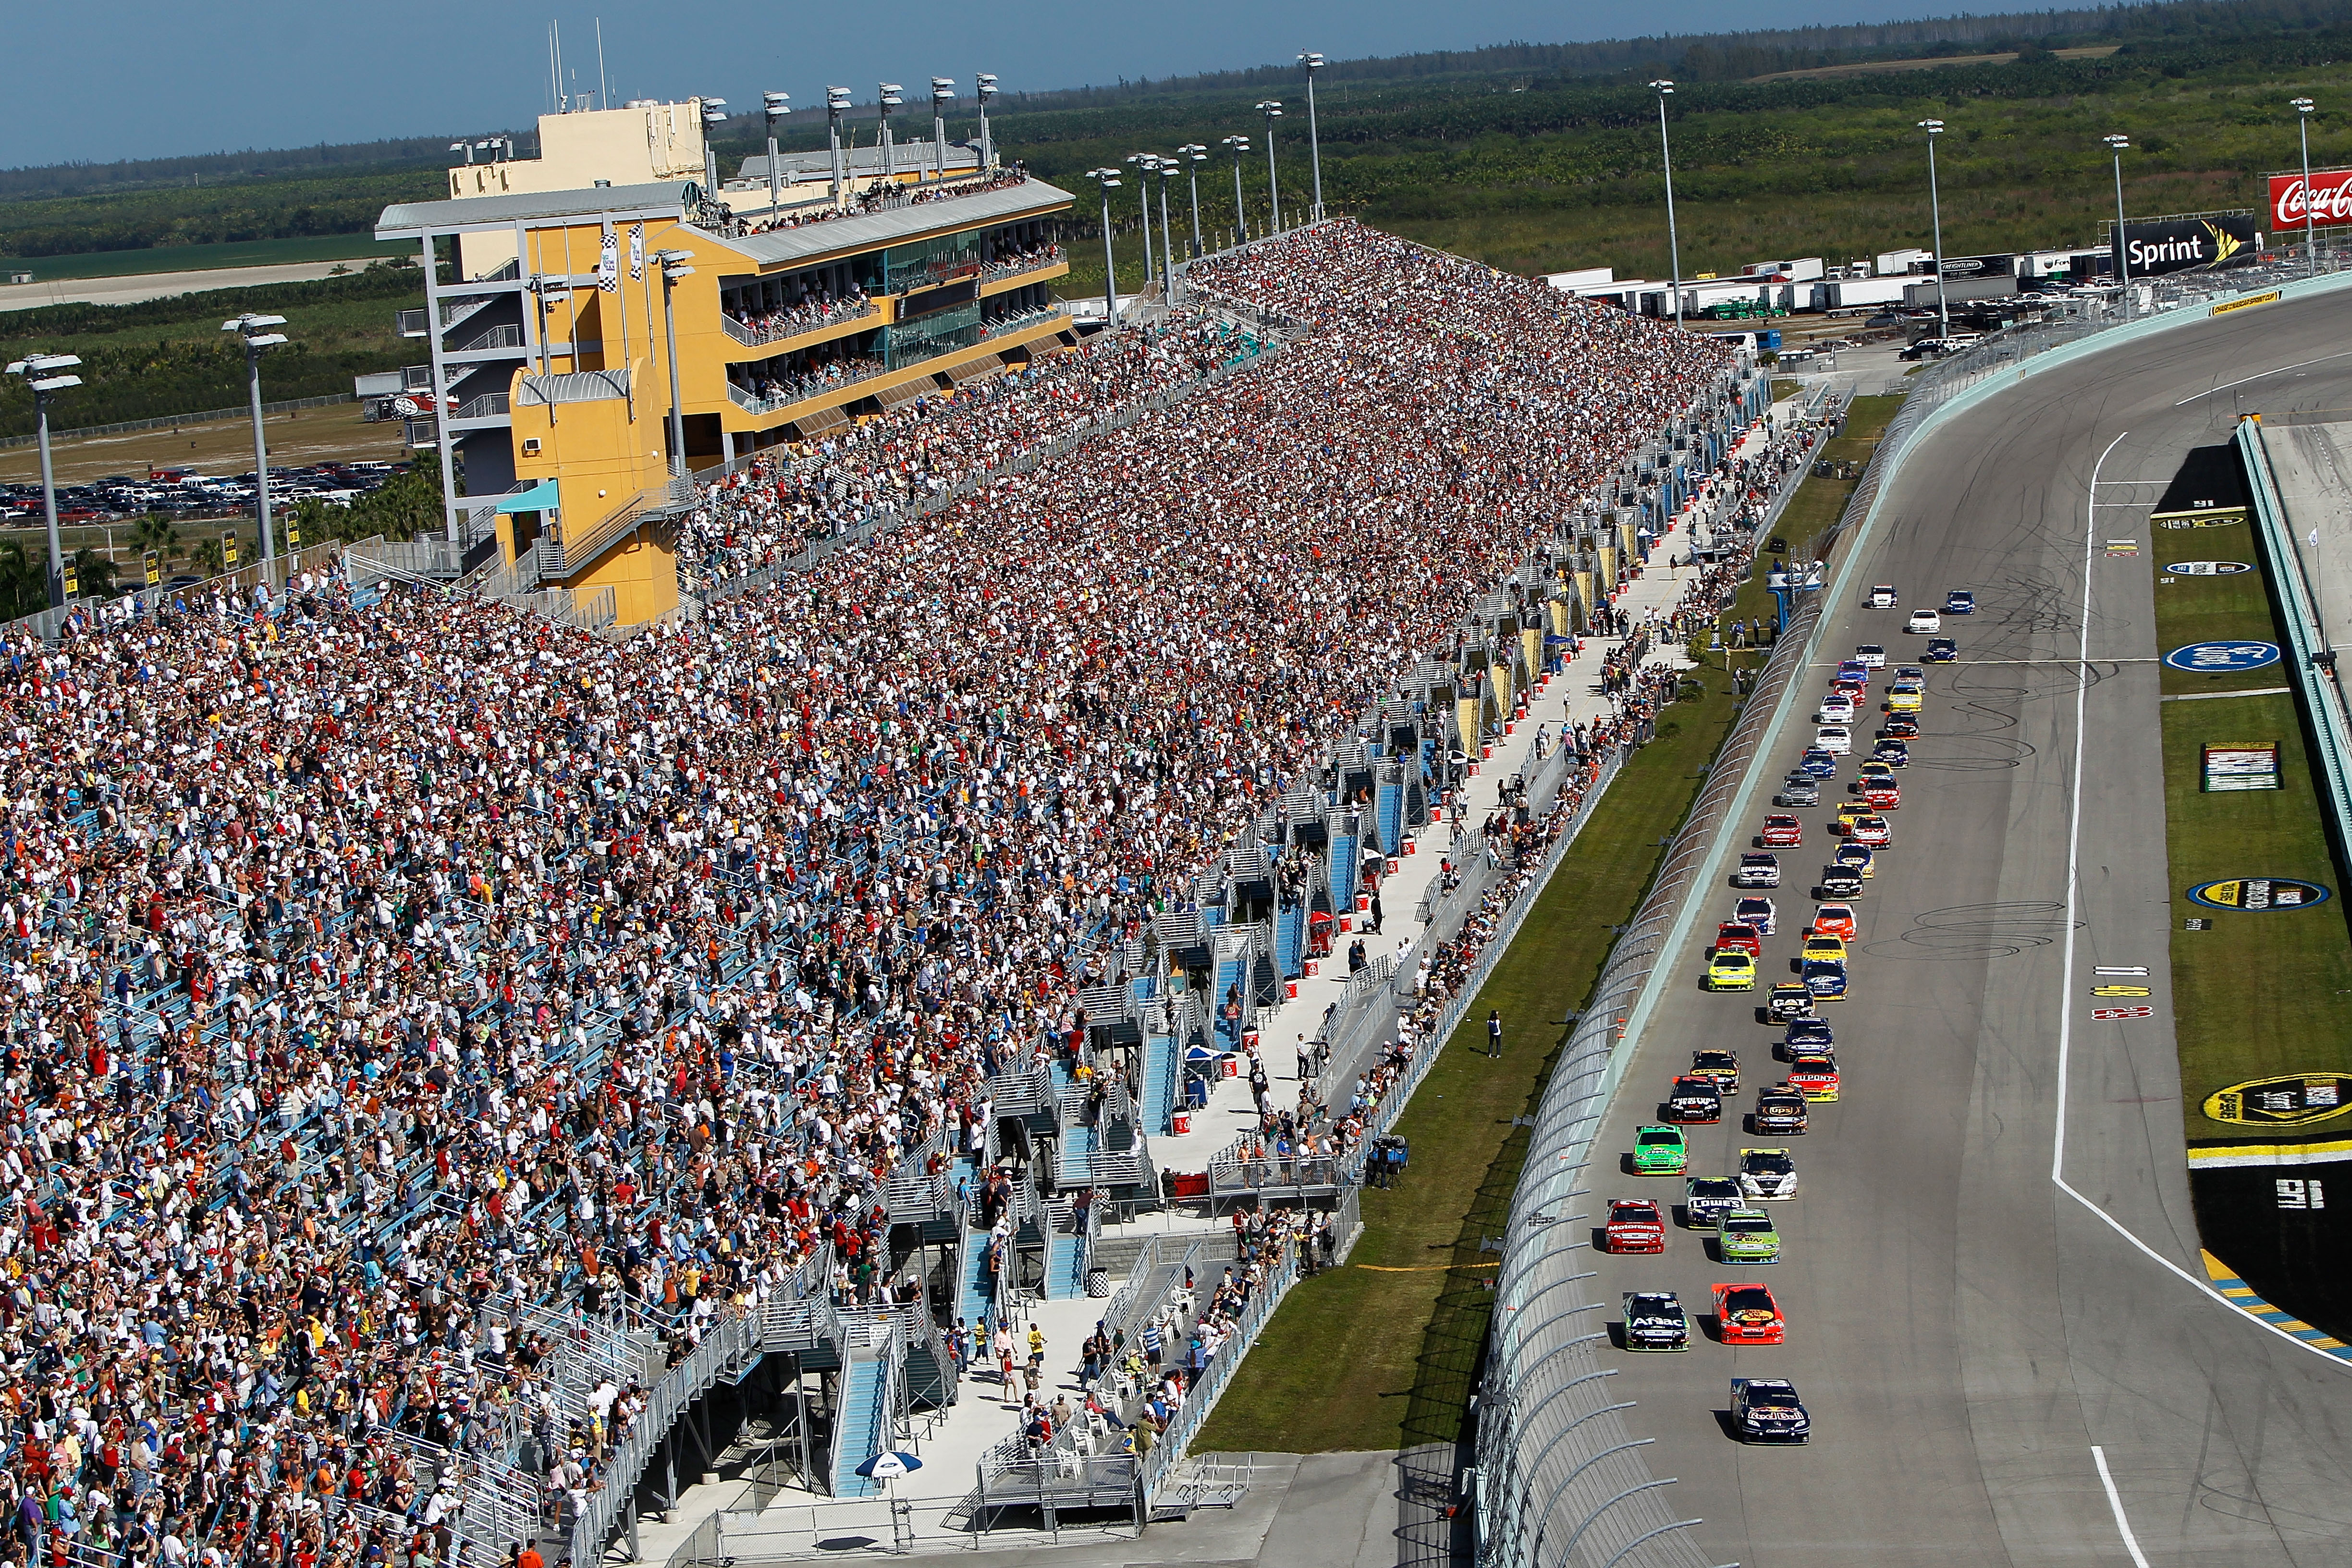 HOMESTEAD, FL - NOVEMBER 21:  A general view of racing during the NASCAR Sprint Cup Series Ford 400 at Homestead-Miami Speedway on November 21, 2010 in Homestead, Florida.  (Photo by Chris Trotman/Getty Images for NASCAR)